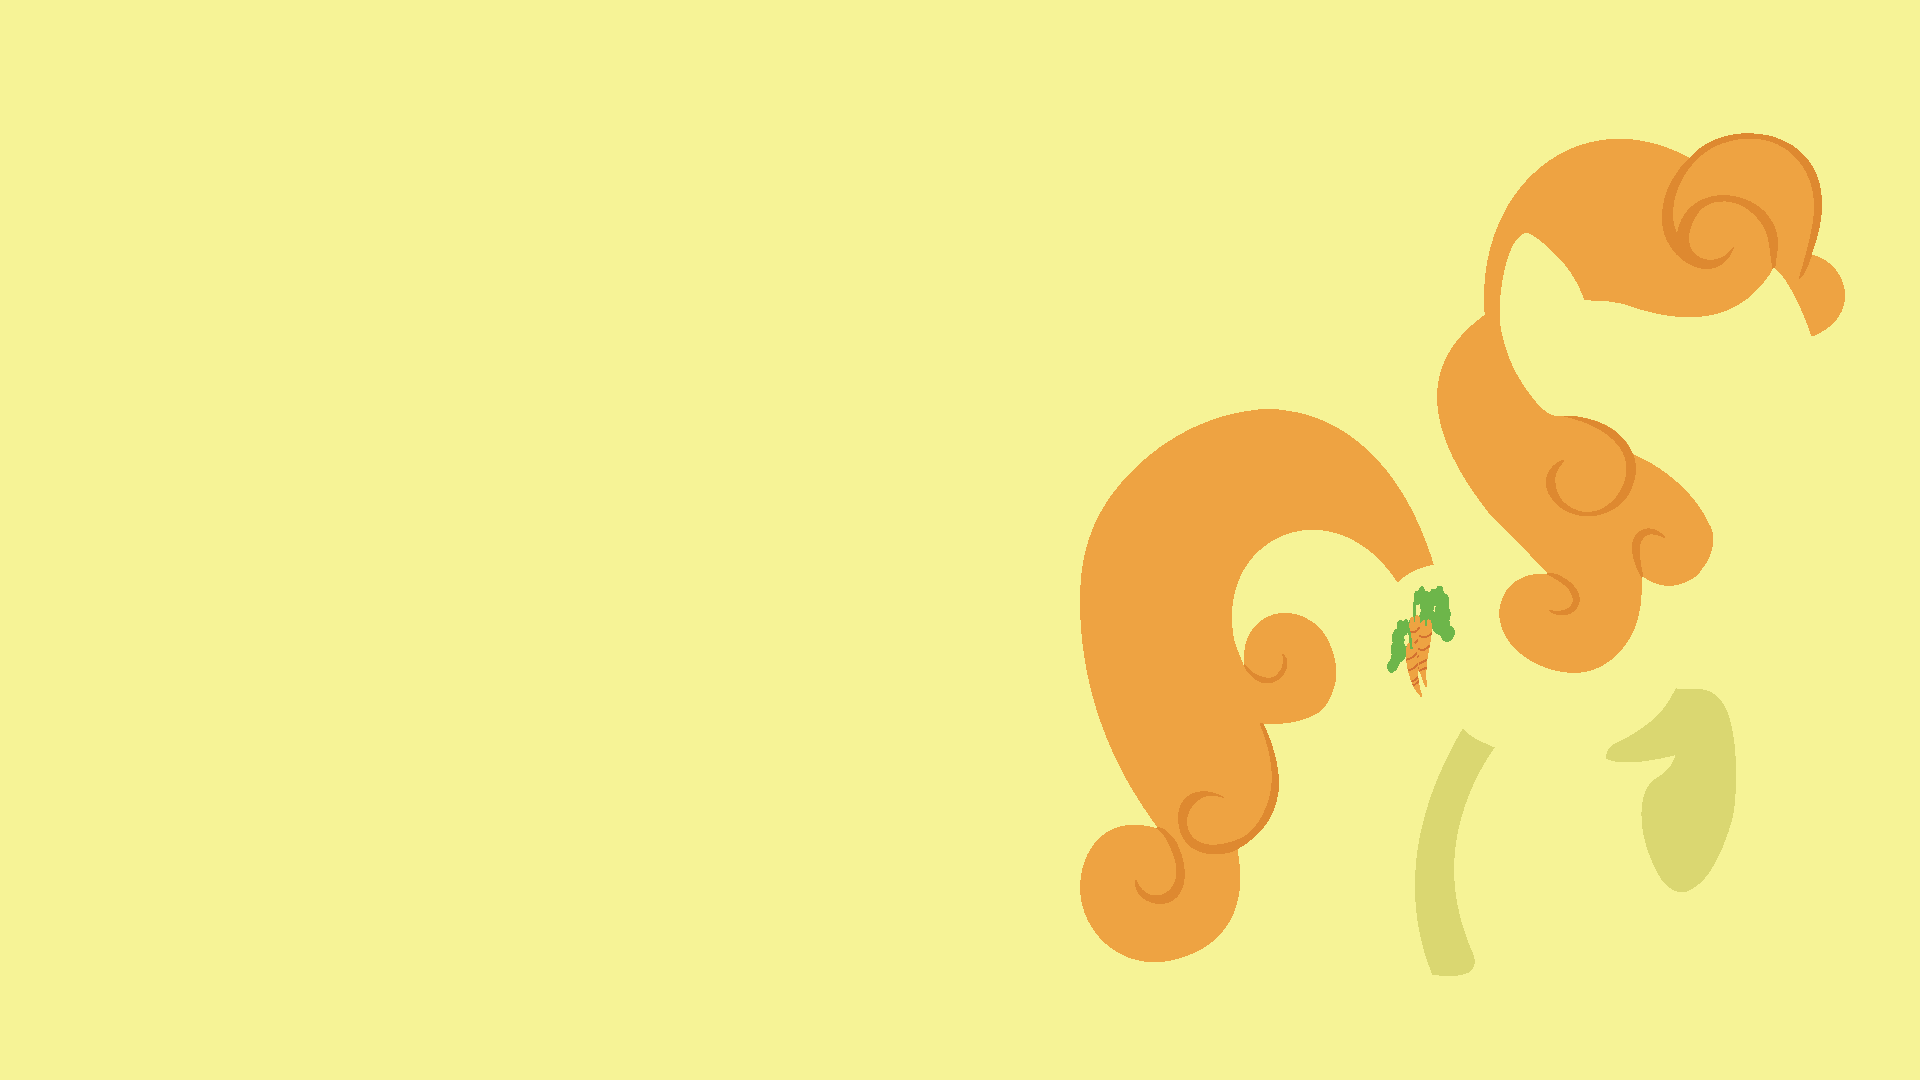 Carrot Top Minimalistic Wallpaper by Kitana-Coldfire and Kna